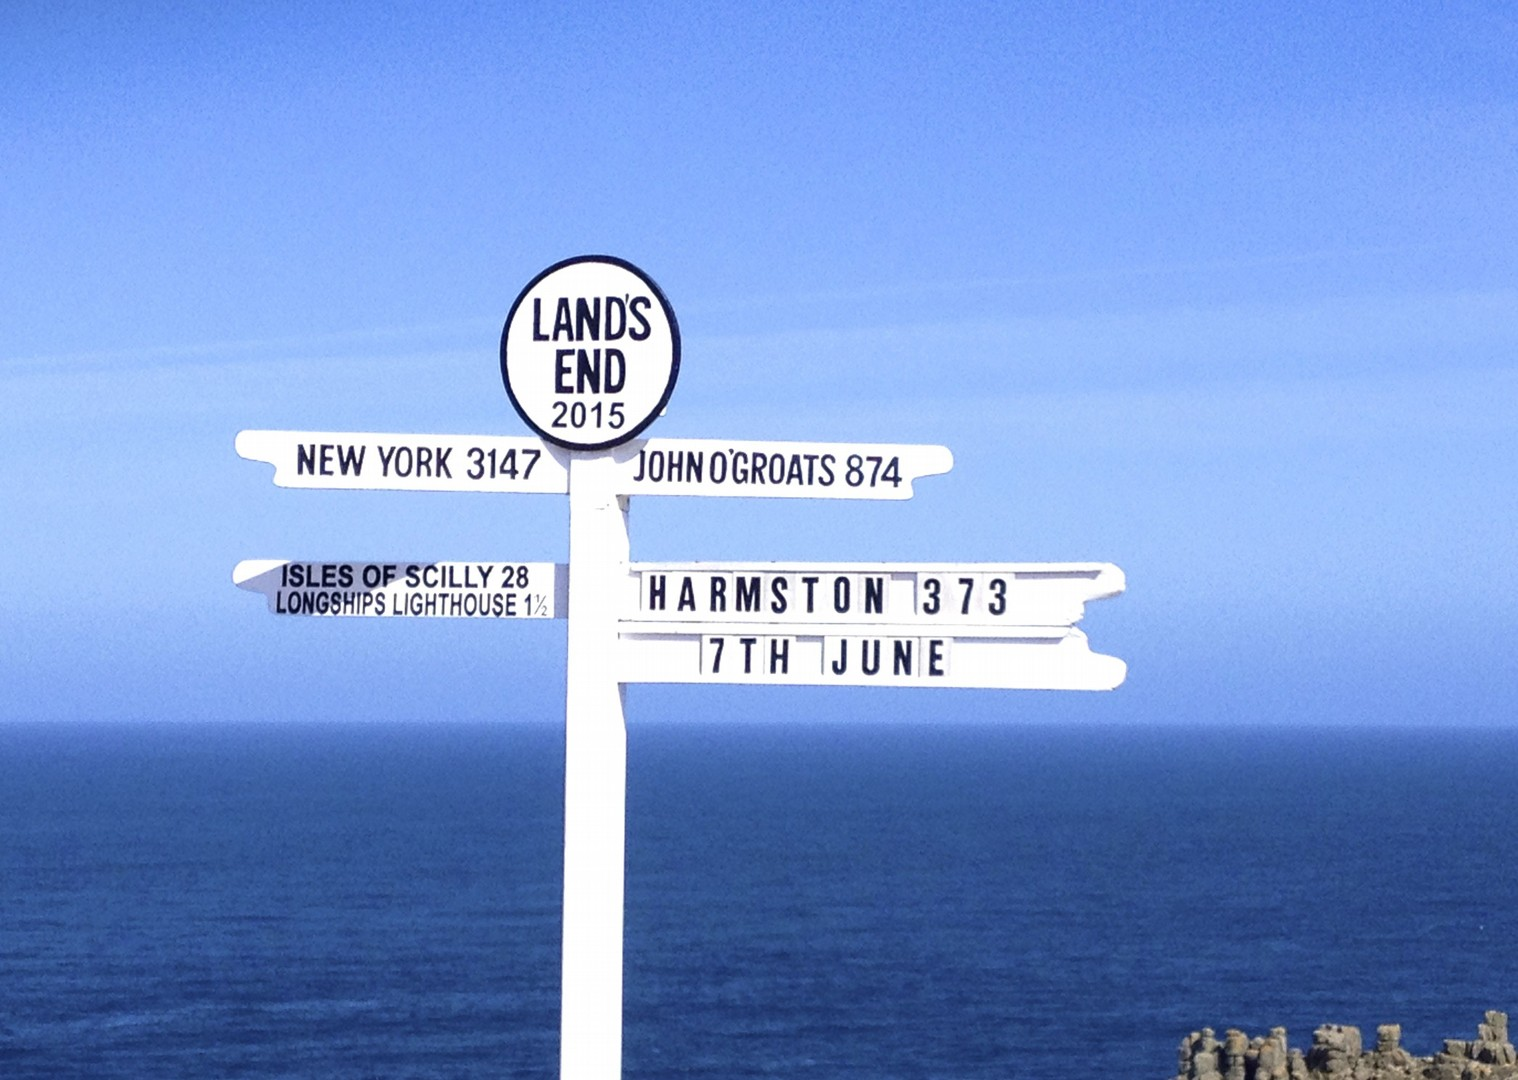 LEJOG6.jpg - UK - Land's End to John O'Groats Classic (16 days) - Guided Road Cycling Holiday - Road Cycling